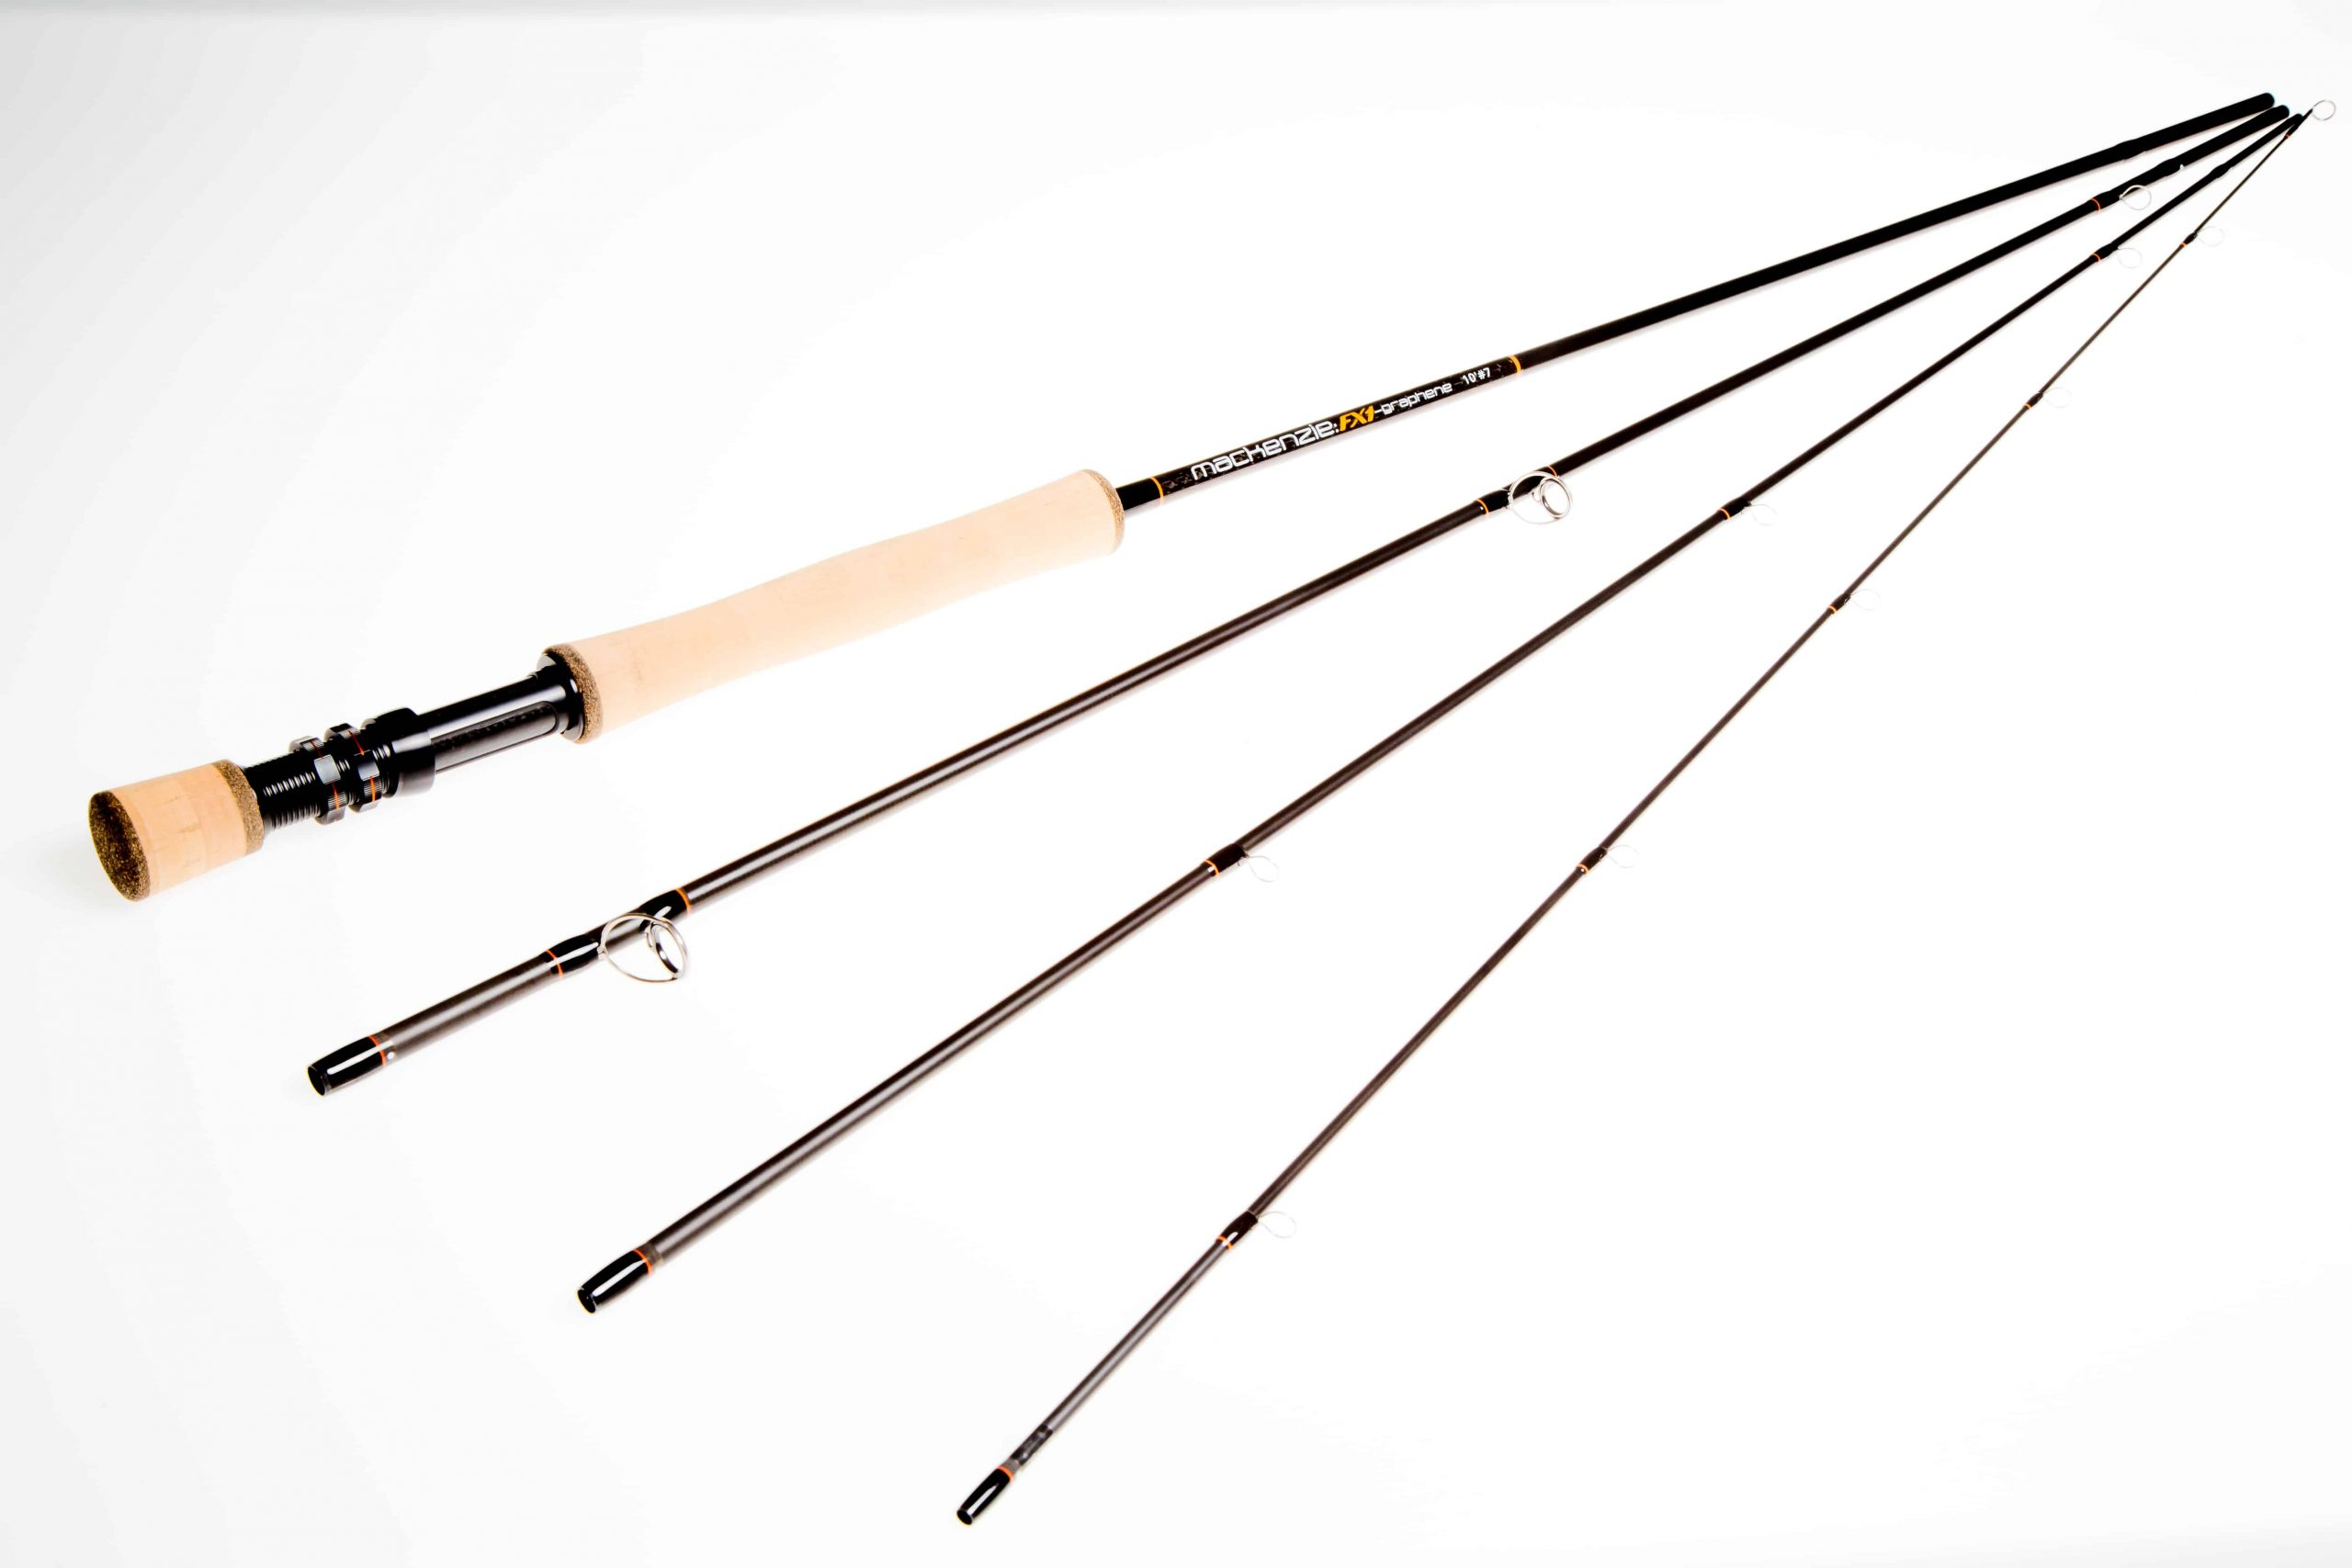 Single handed 10 ft 7wt, 4 piece